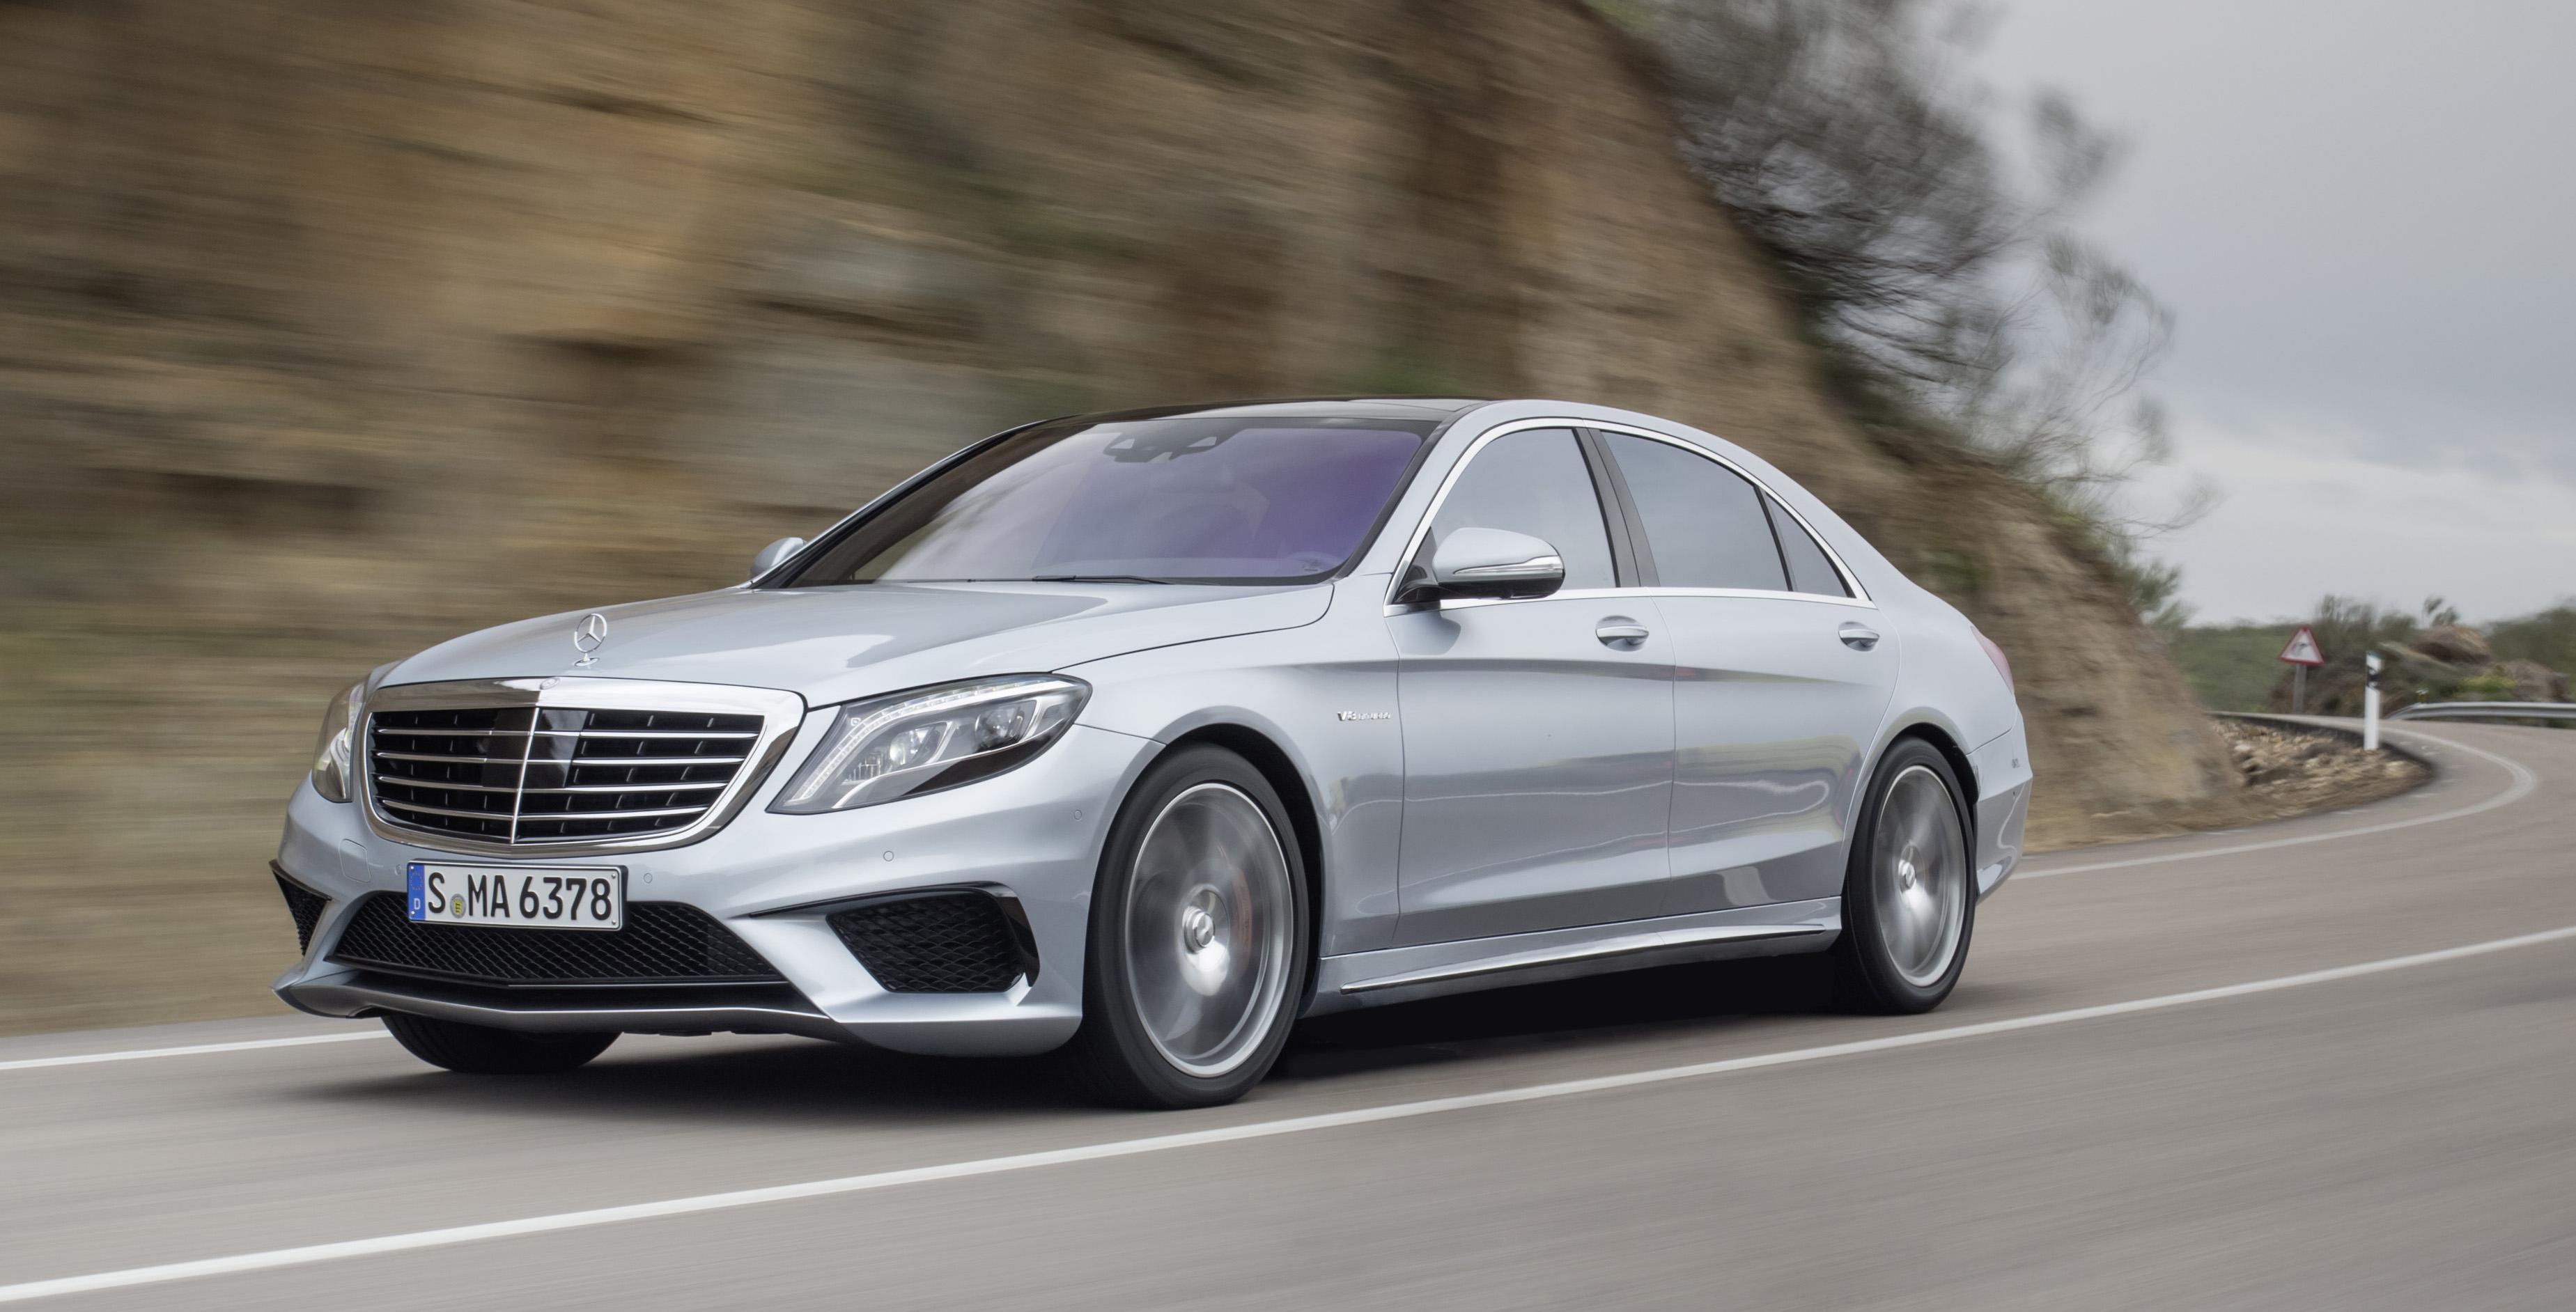 W222 Mercedes Benz S63 Amg Breaks Cover 900nm Image 188025